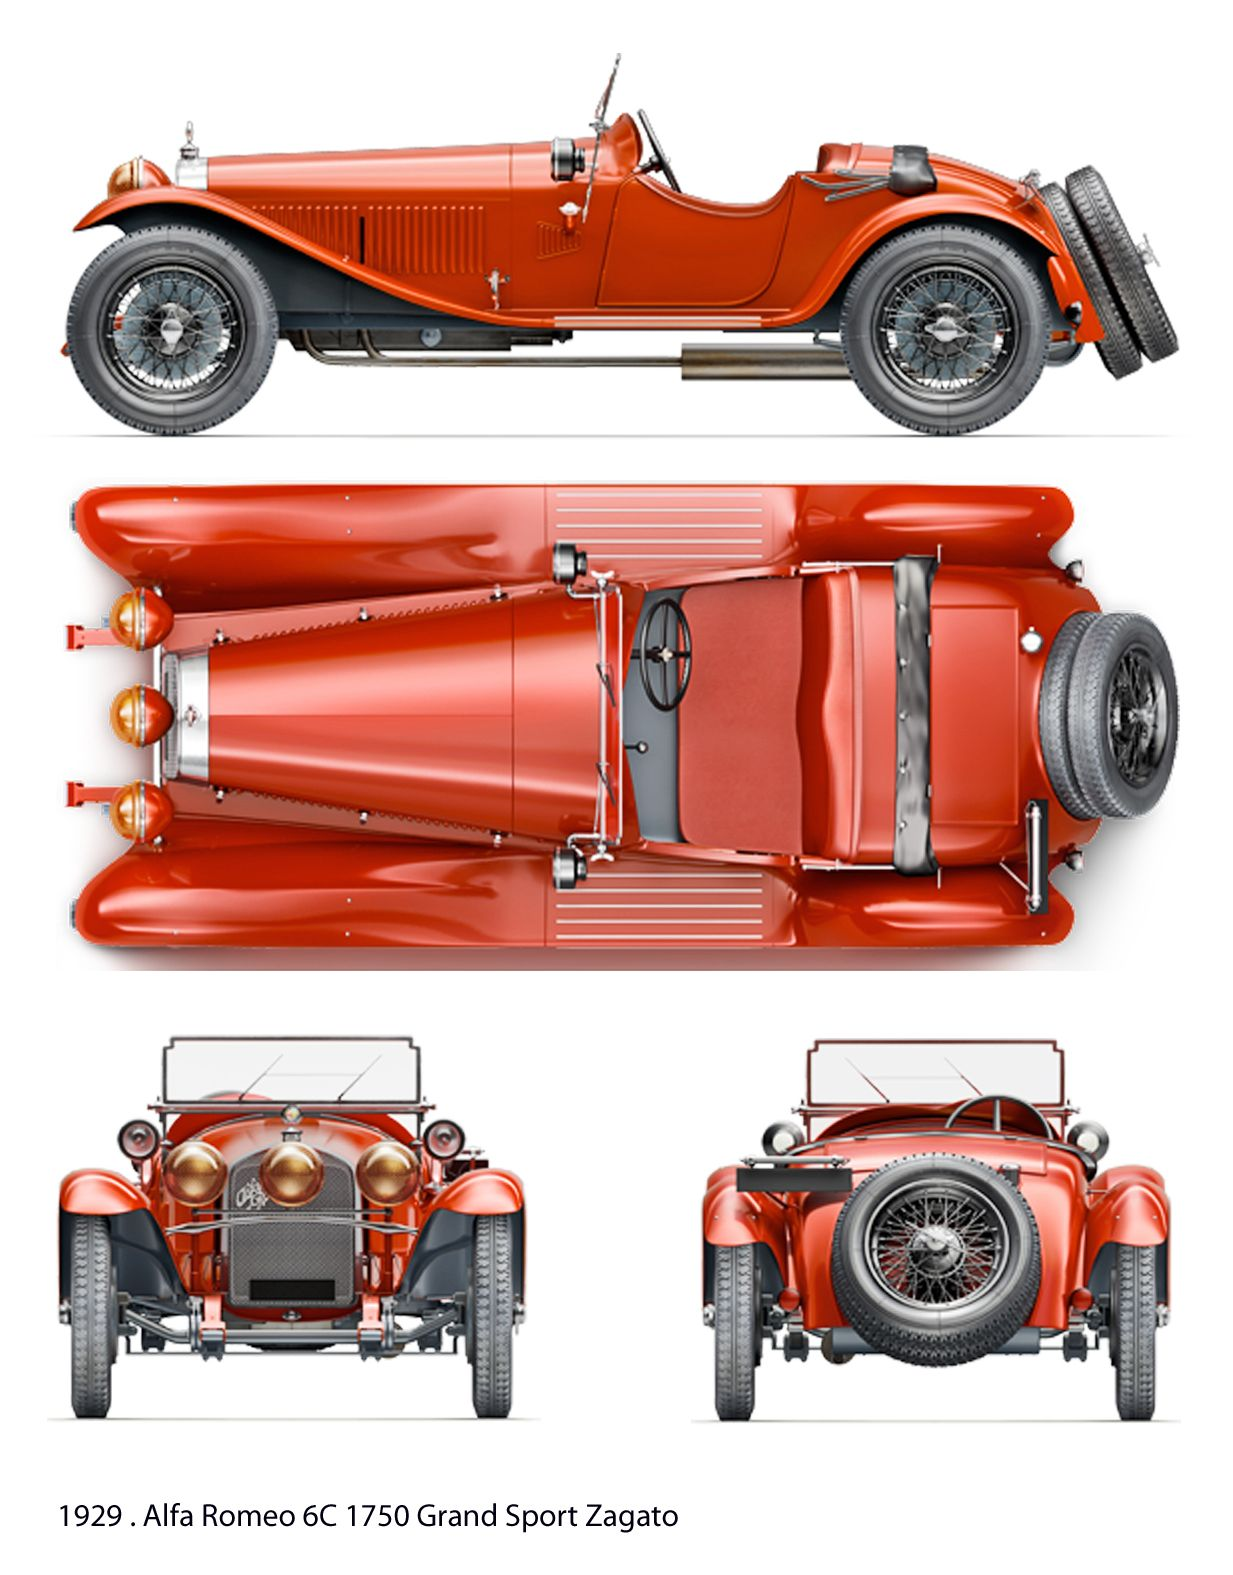 Alfa Romeo 6C 1750 GS Zagato (1929) | SMCars.Net - Car Blueprints ...